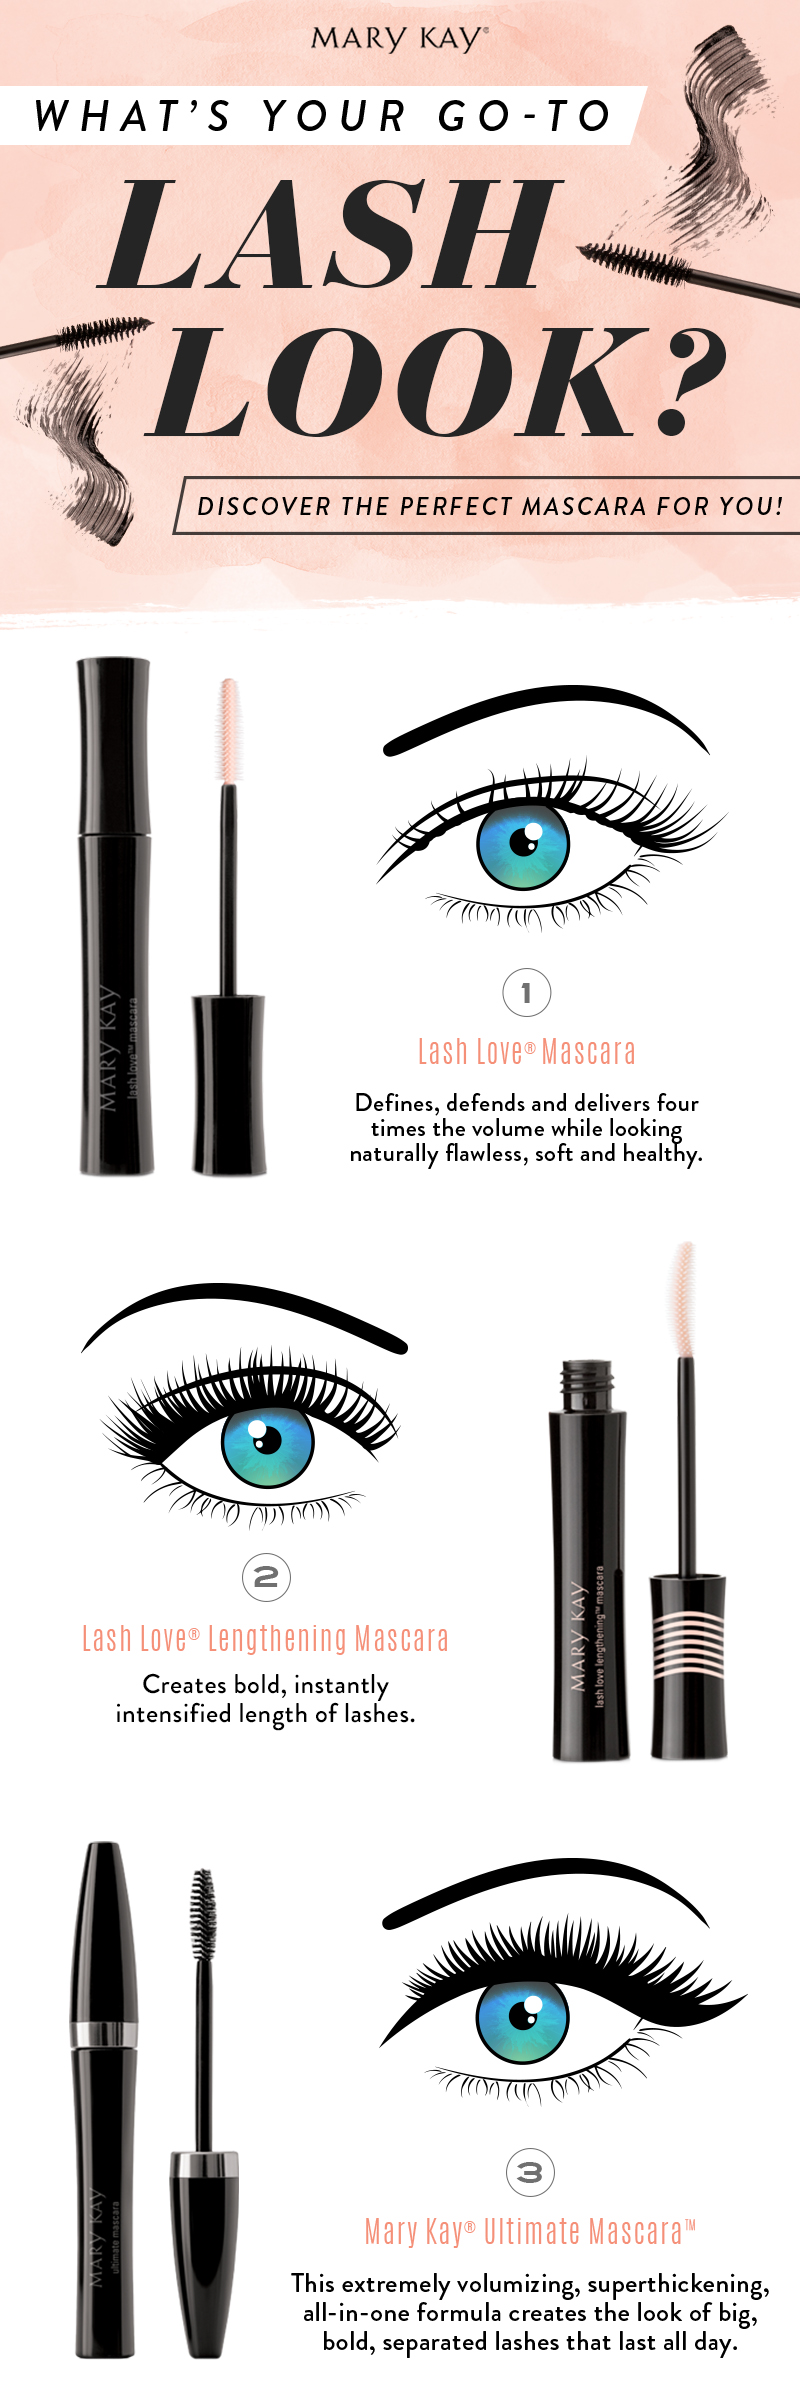 85cce0829d6 Lash Love® Mascara, Lash Love Lengthening® Mascara or Mary Kay® Ultimate  Mascara™: Which mascara catches your eye? You know you'll want them all.